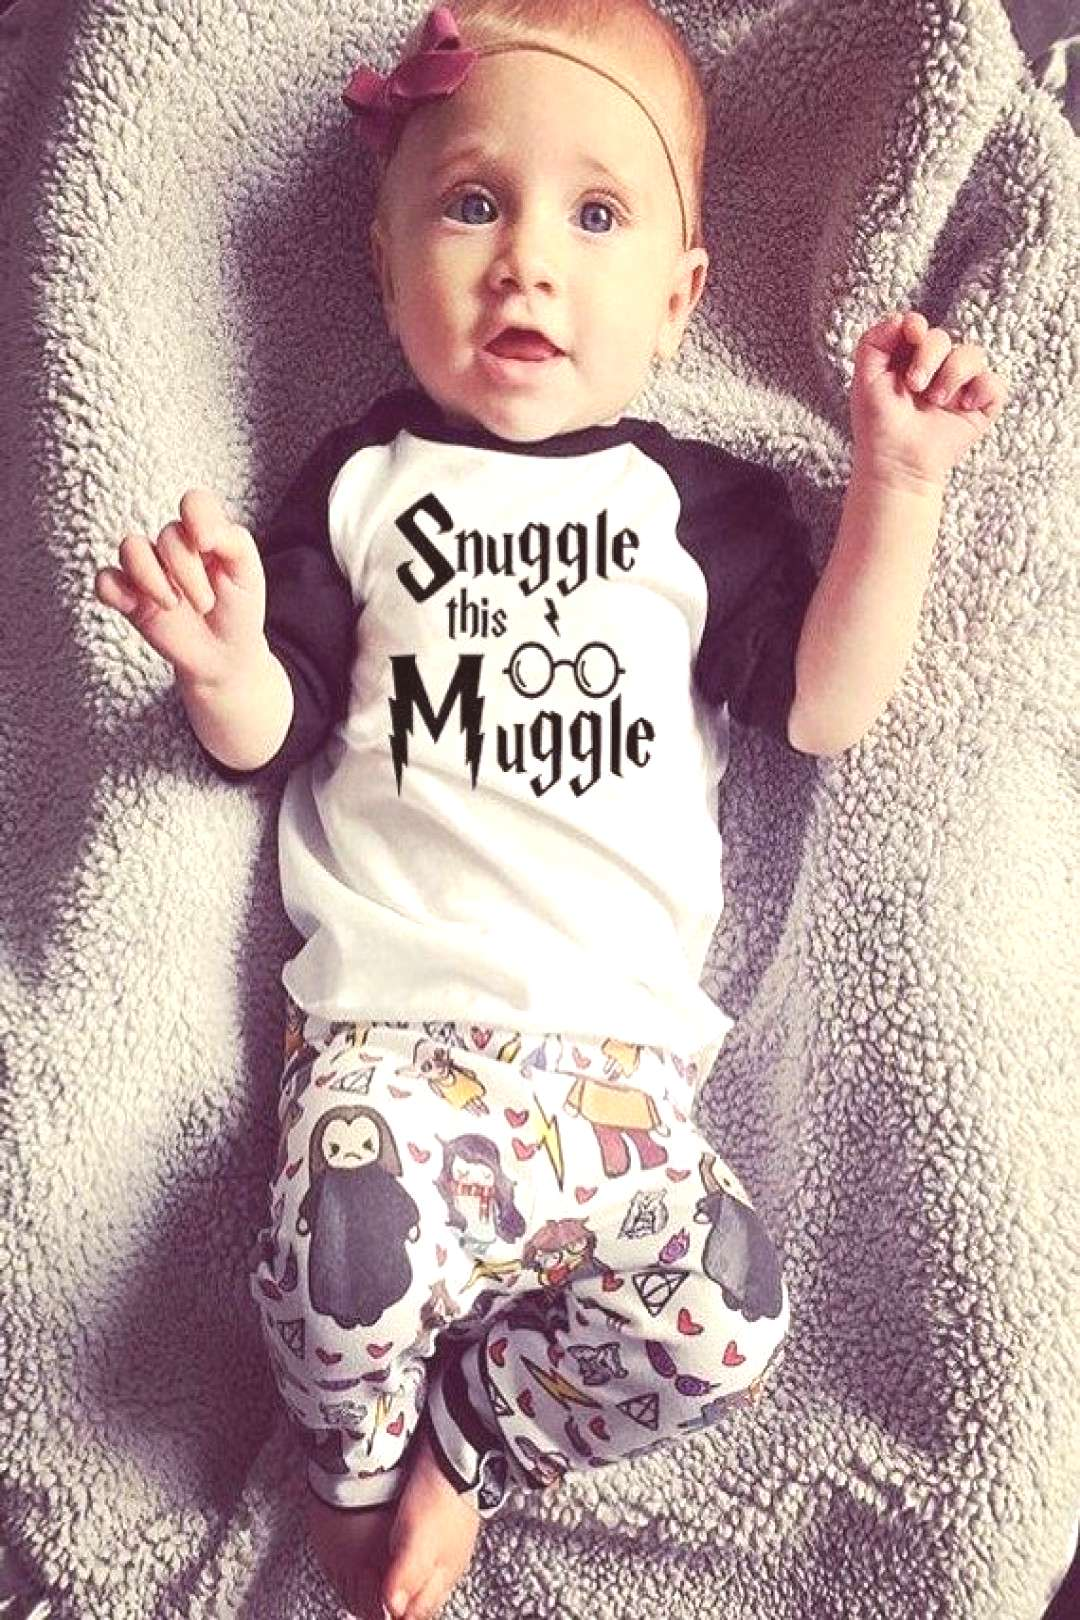 Harry Potter Onesies Harry Potter Baby Clothes Harry Potter Snuggle This Muggle Iron OnCute Babyamp